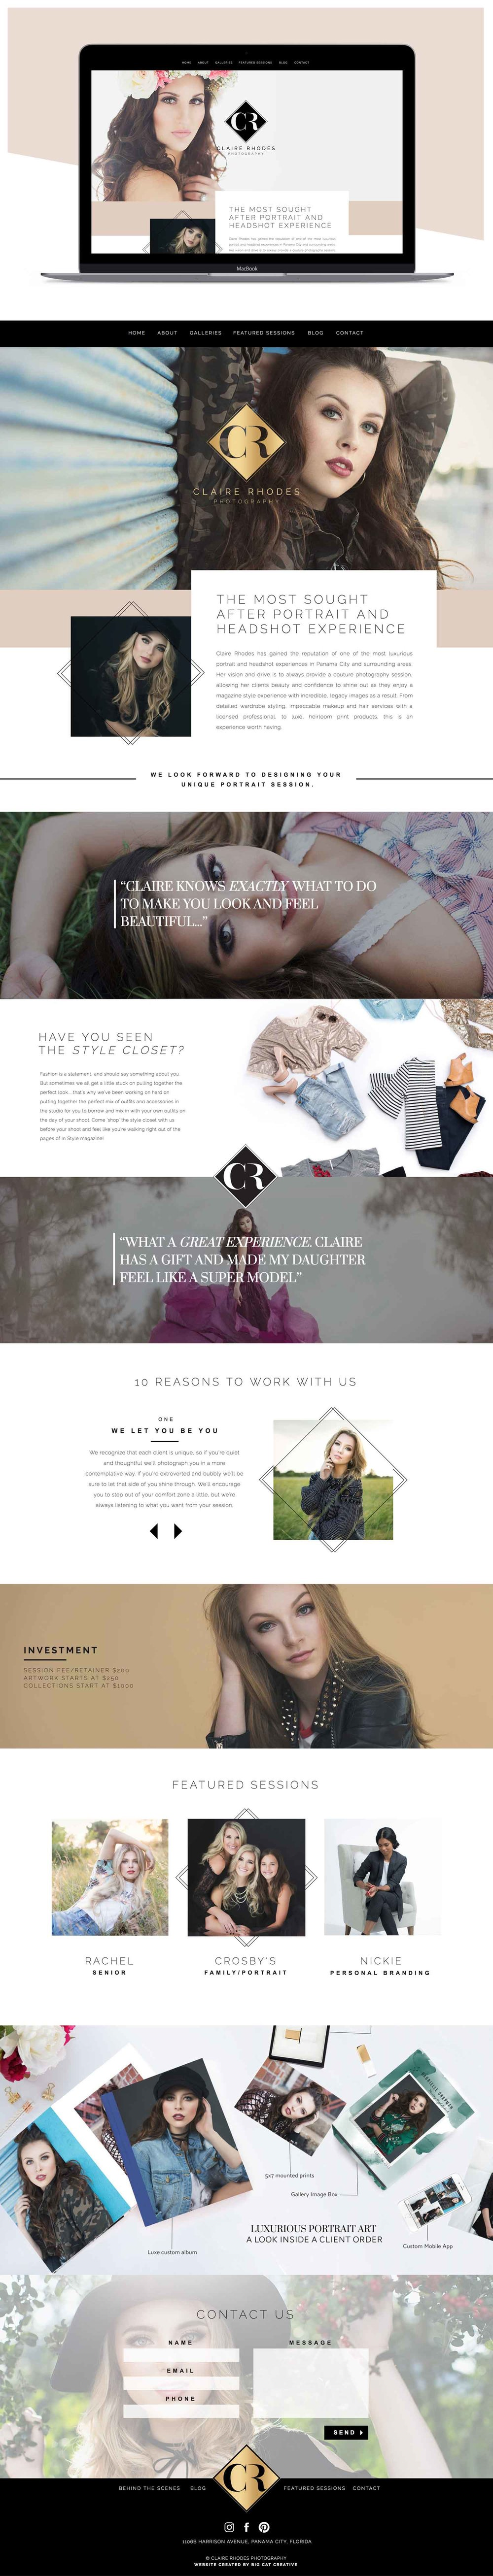 Claire-Rhodes-Showit-Website-Design-by-Big-Cat-Creative.jpg